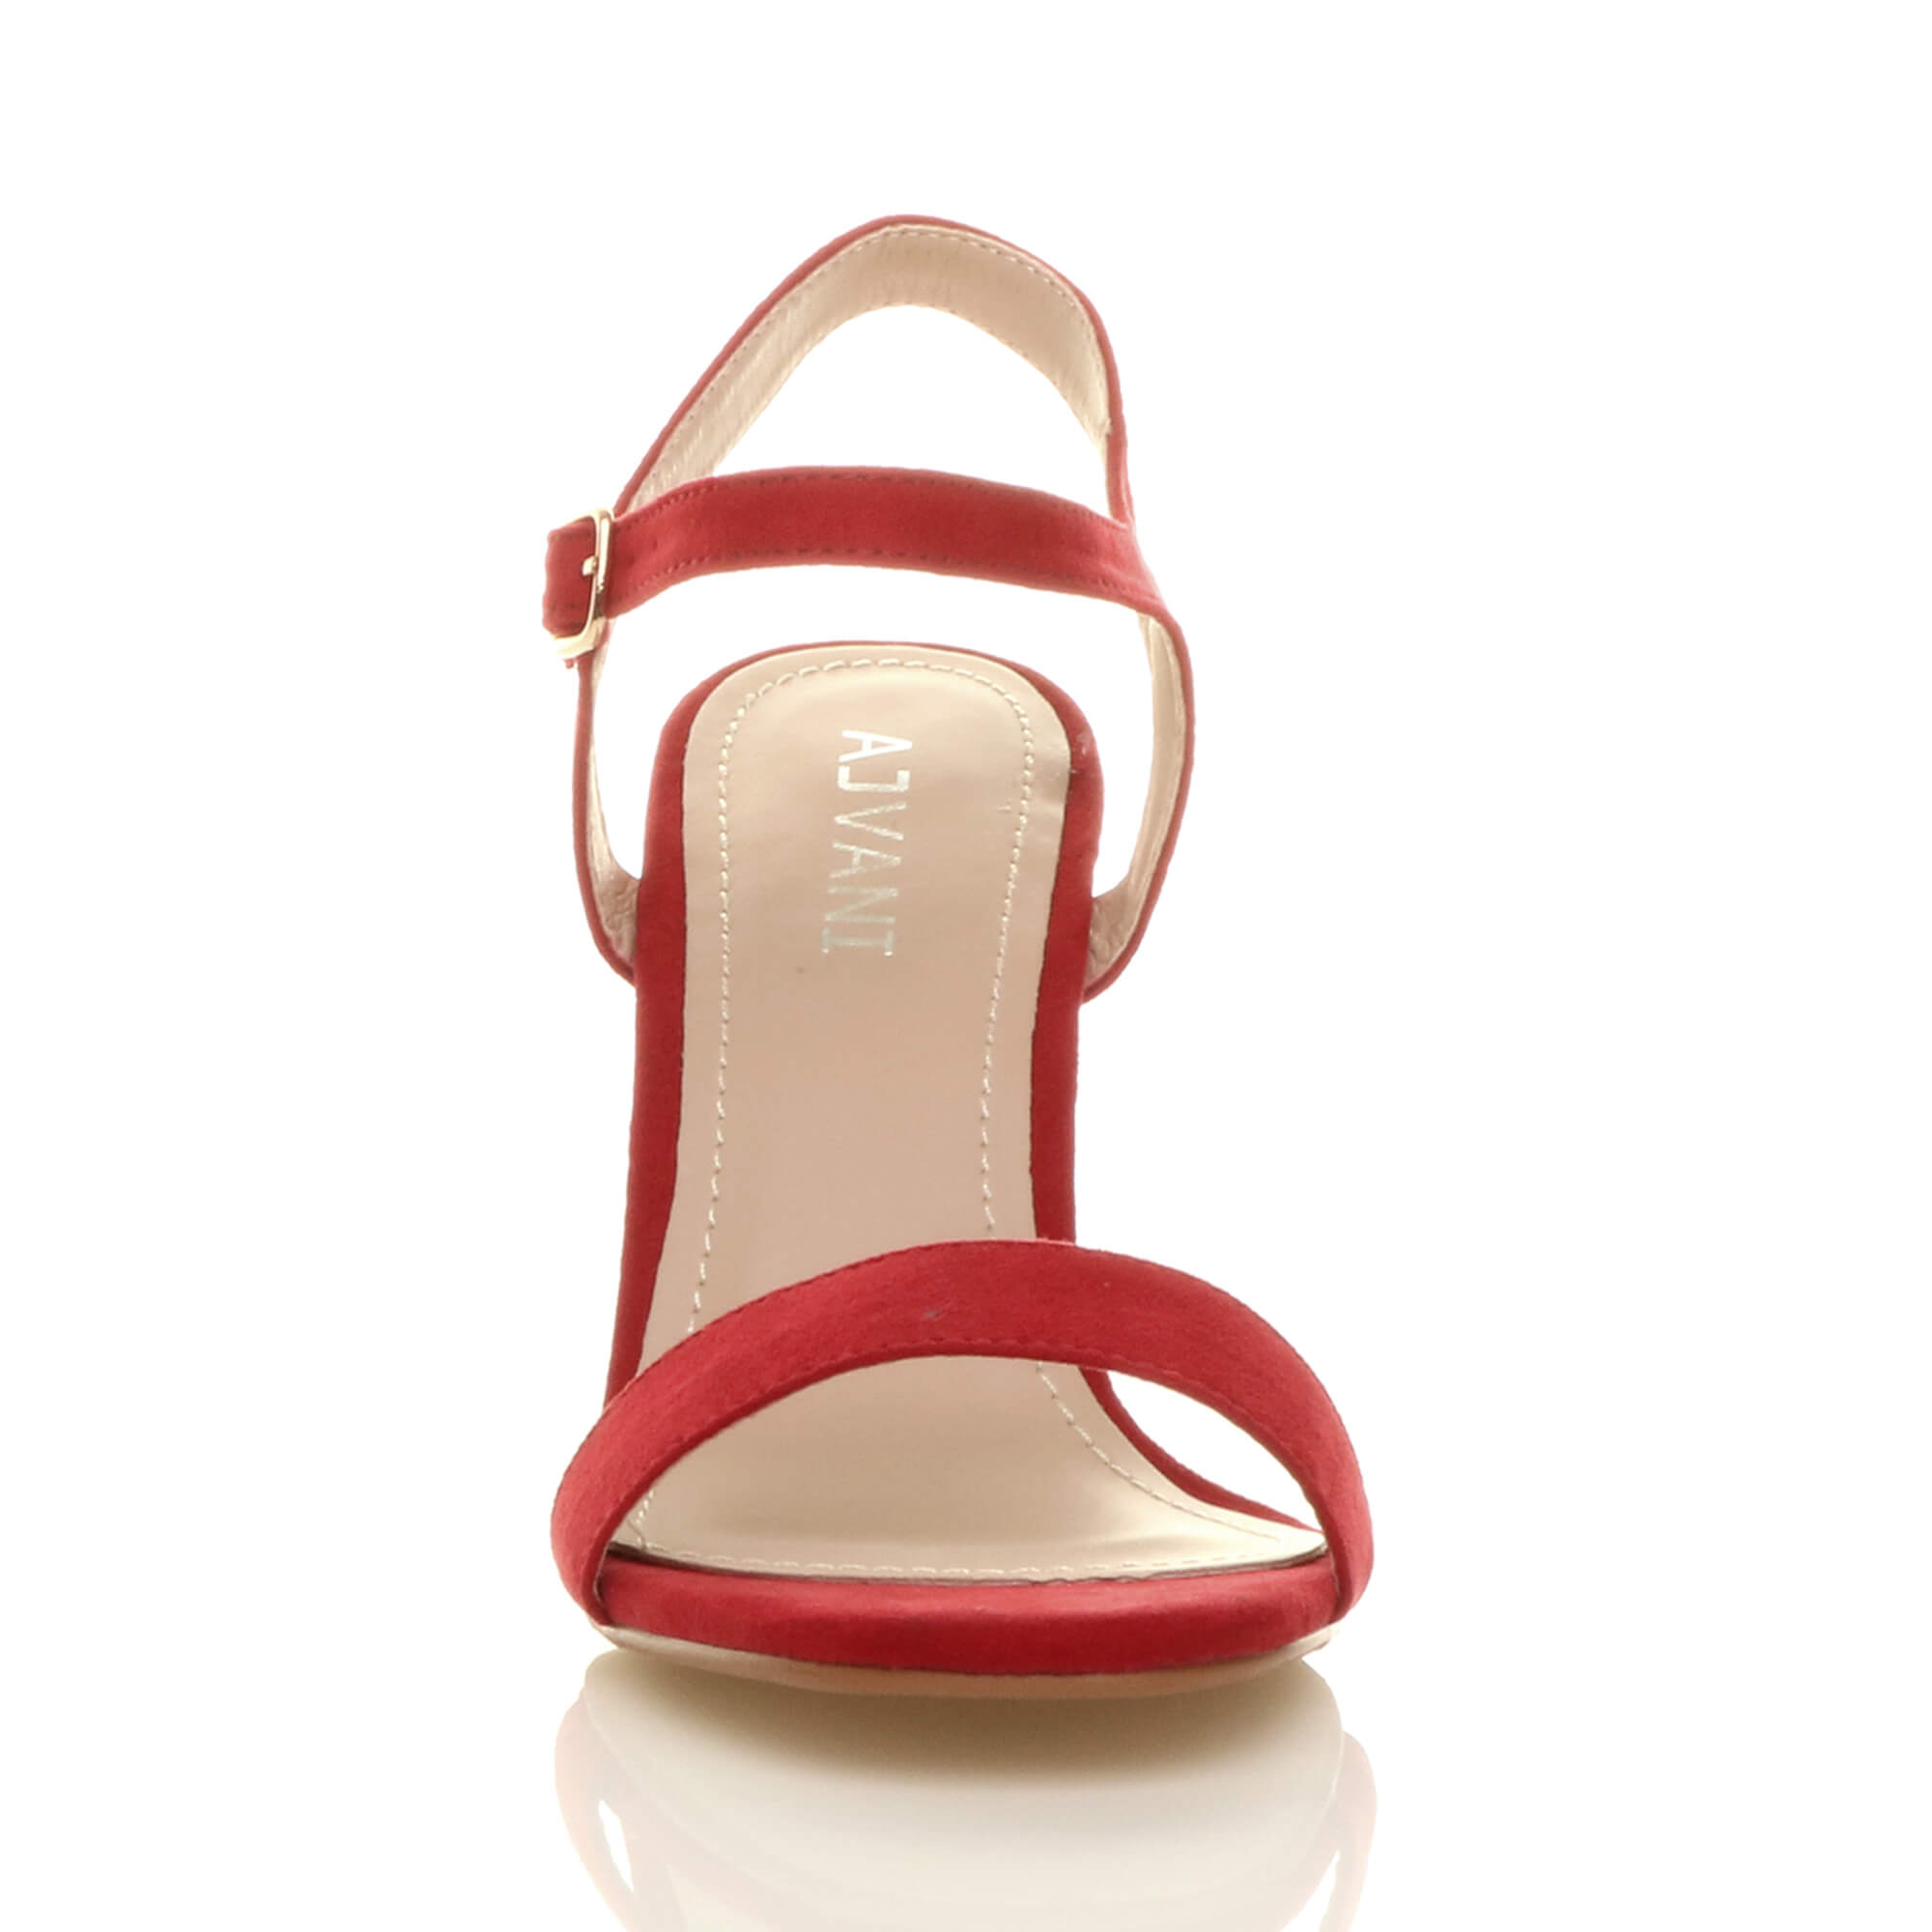 WOMENS-LADIES-HIGH-HEEL-BUCKLE-STRAPPY-BASIC-BARELY-THERE-SANDALS-SHOES-SIZE thumbnail 118